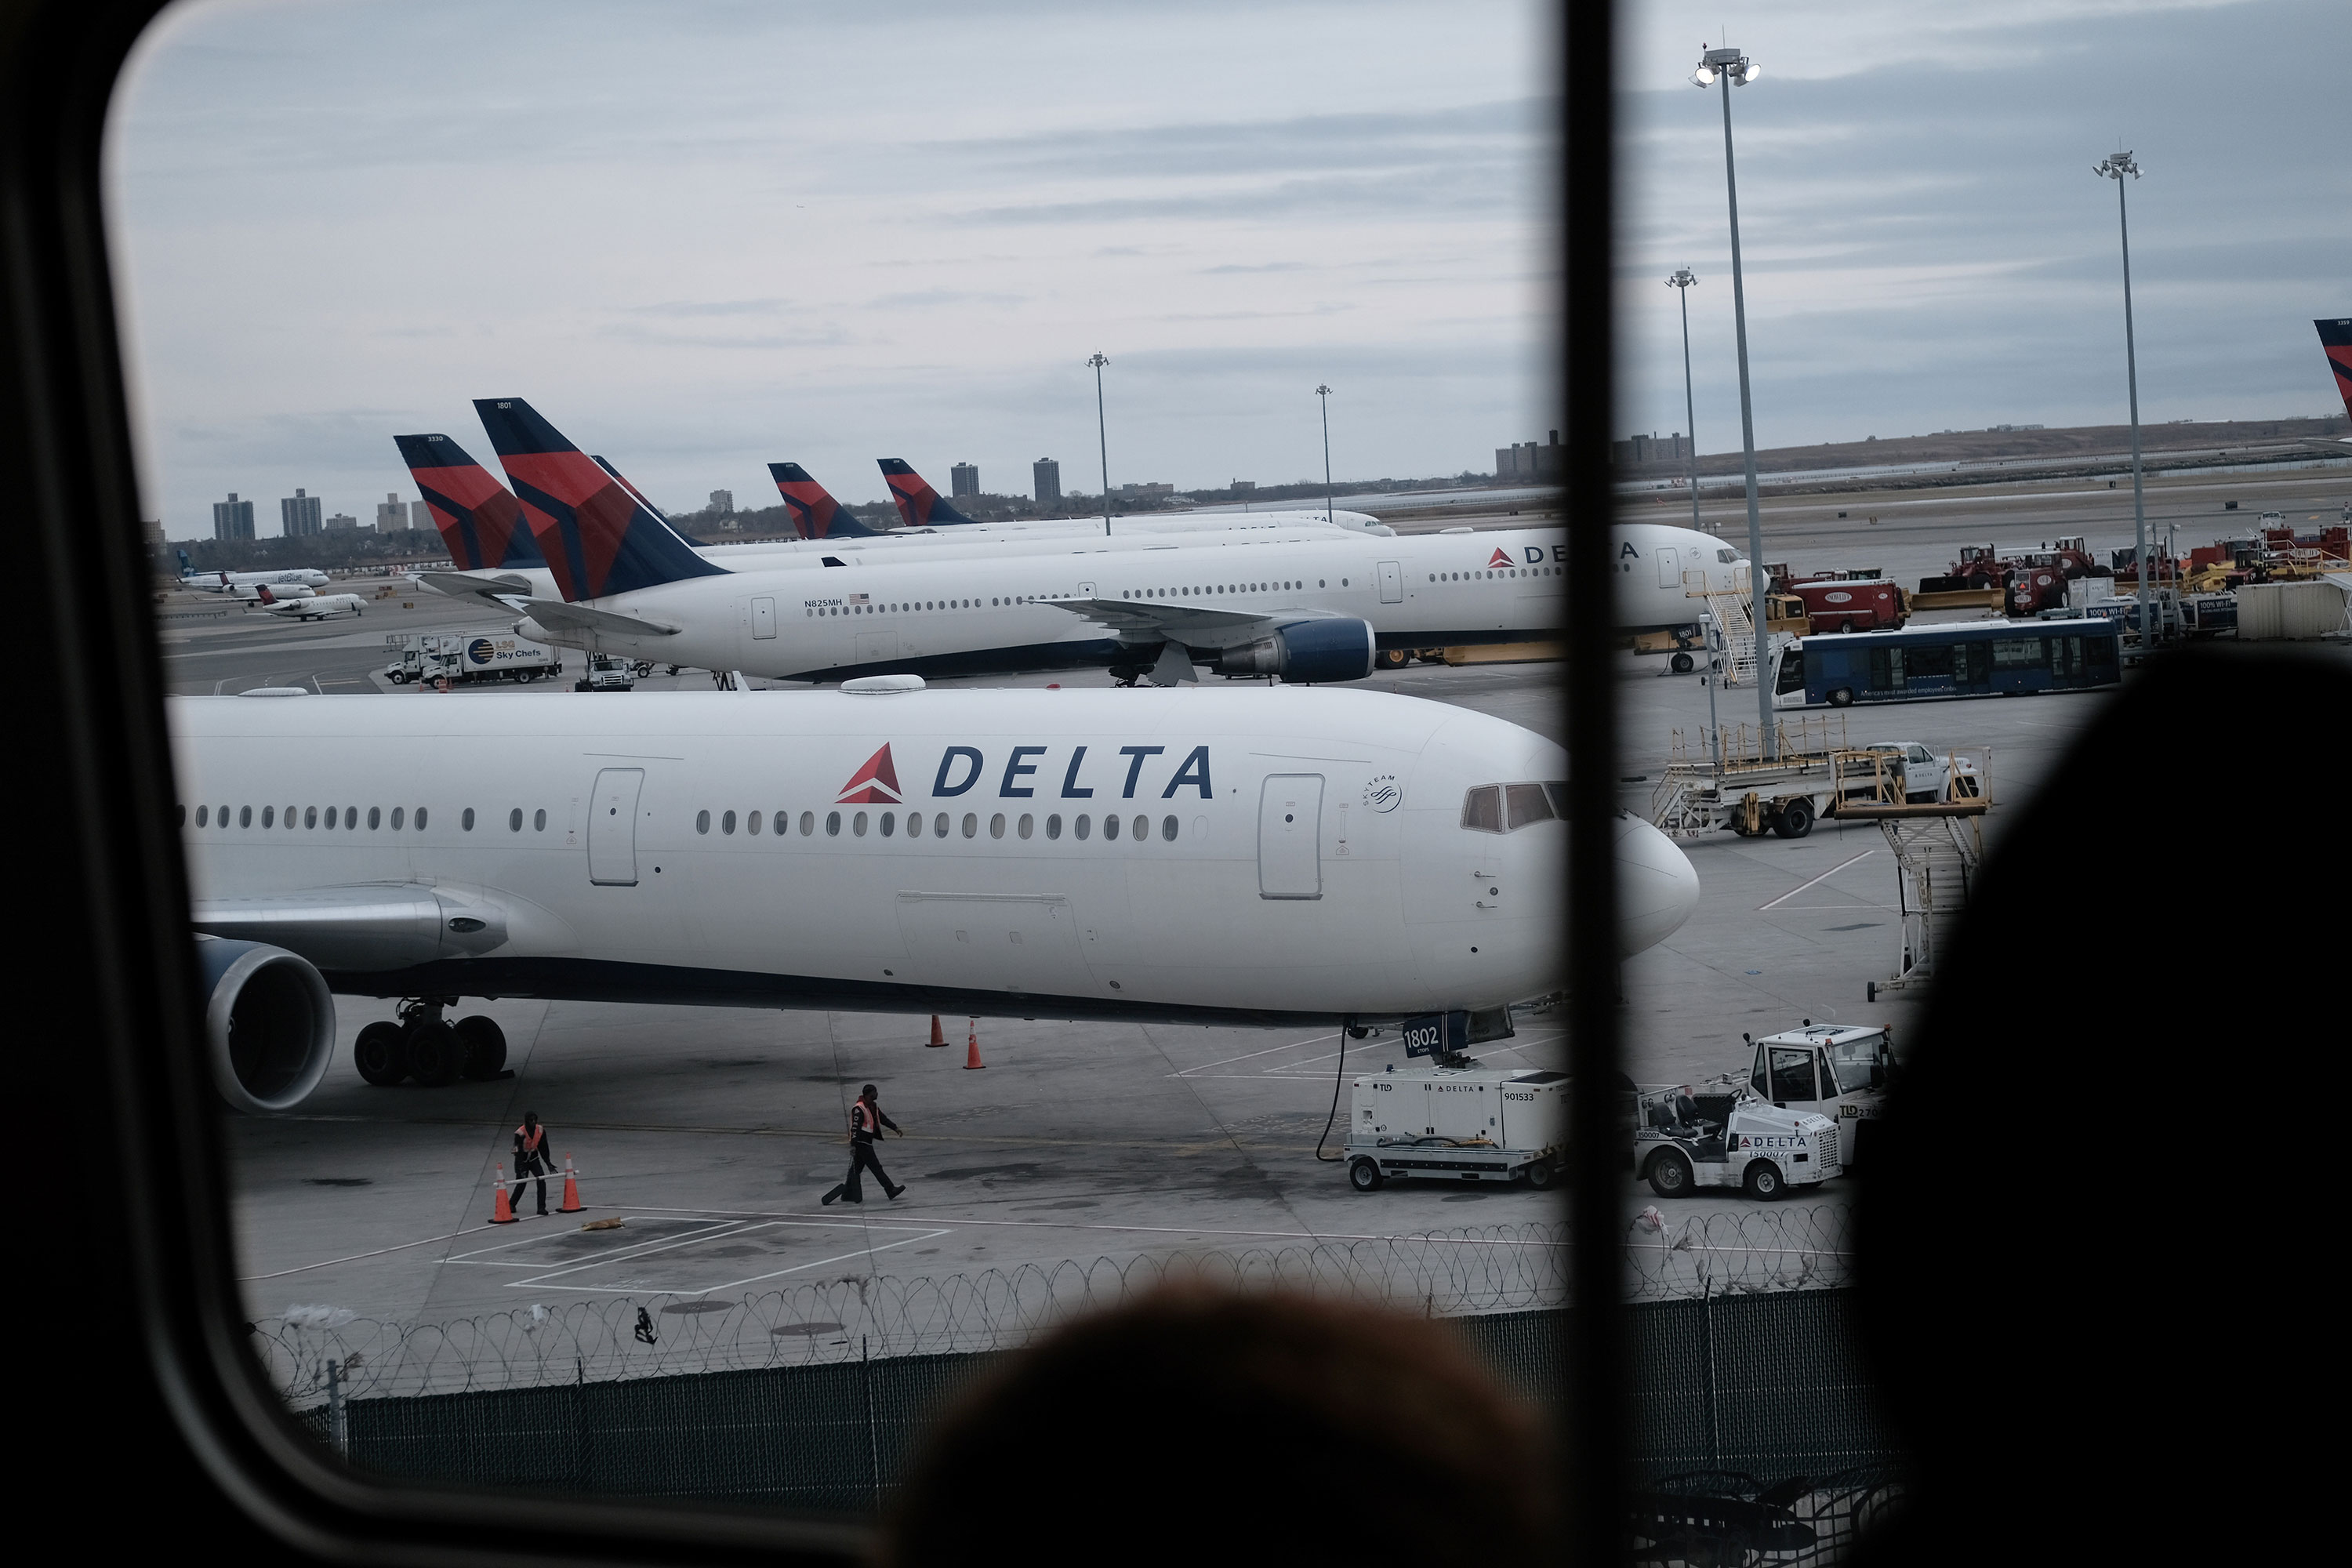 Delta airplanes sit on the tarmac at John F. Kennedy Airport (JFK) on Thursday, January 31, 2020 in New York City.